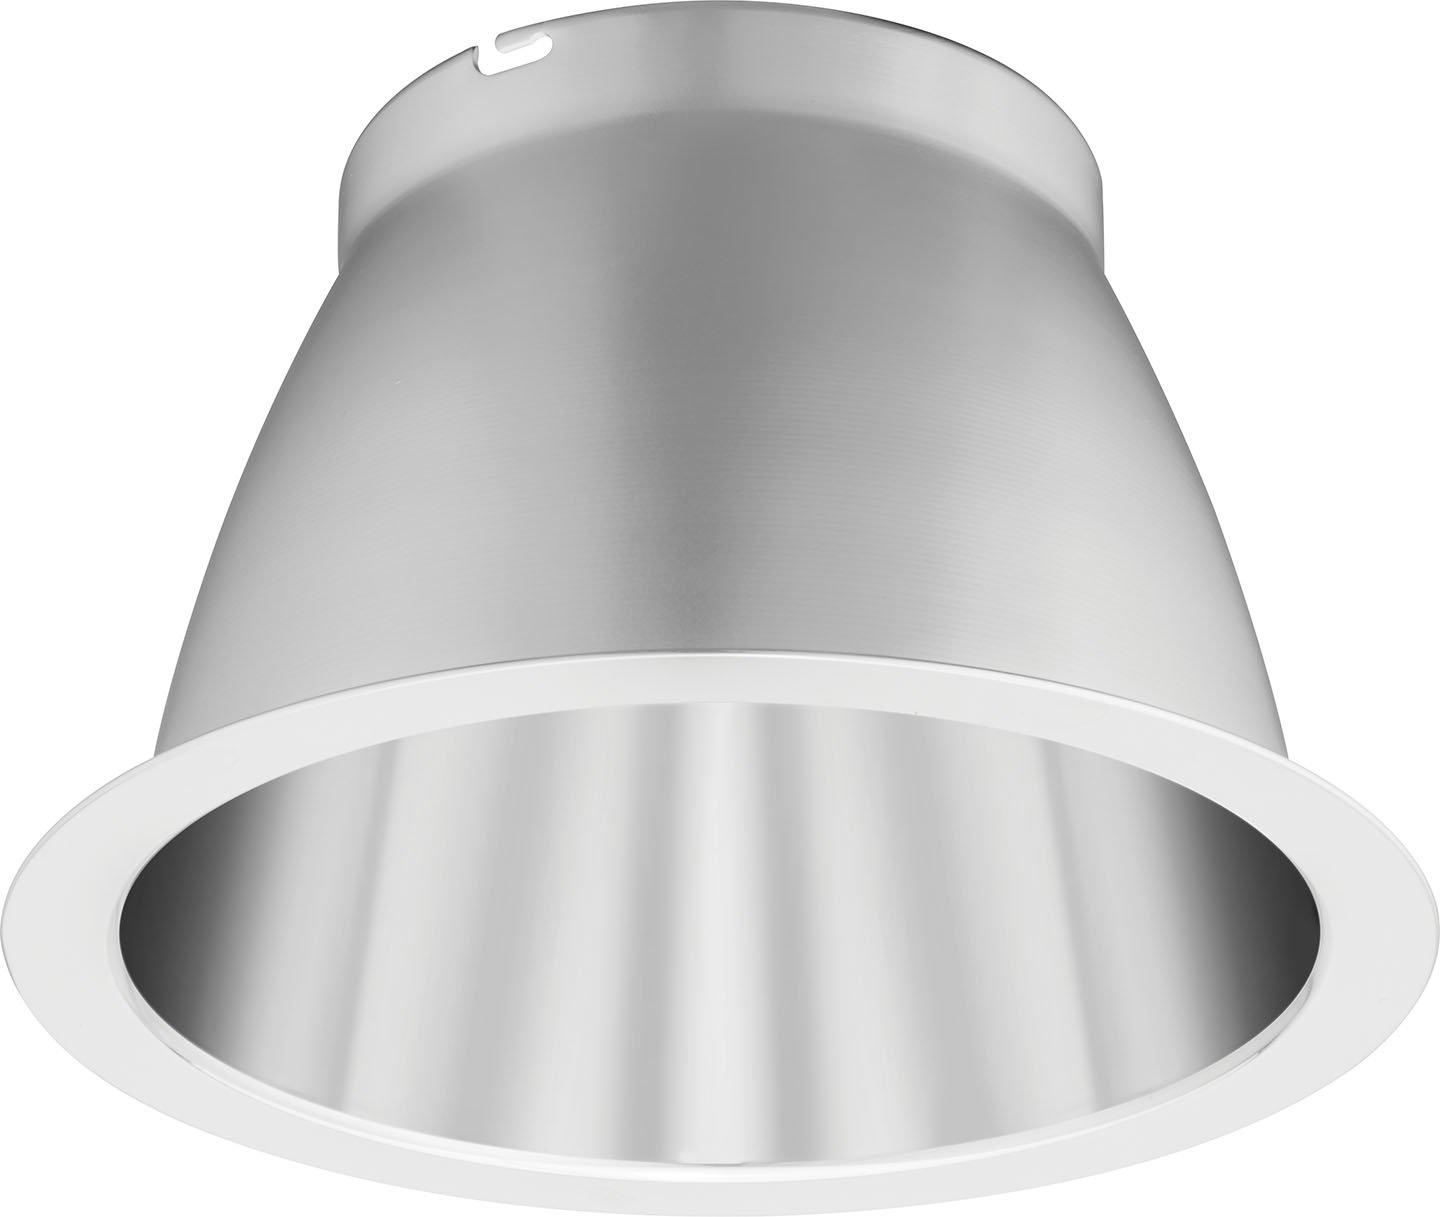 Lithonia Lighting LO6AR LD LDN 6-Inch Open Matte-Diffuse Clear LED Downlighting Trim